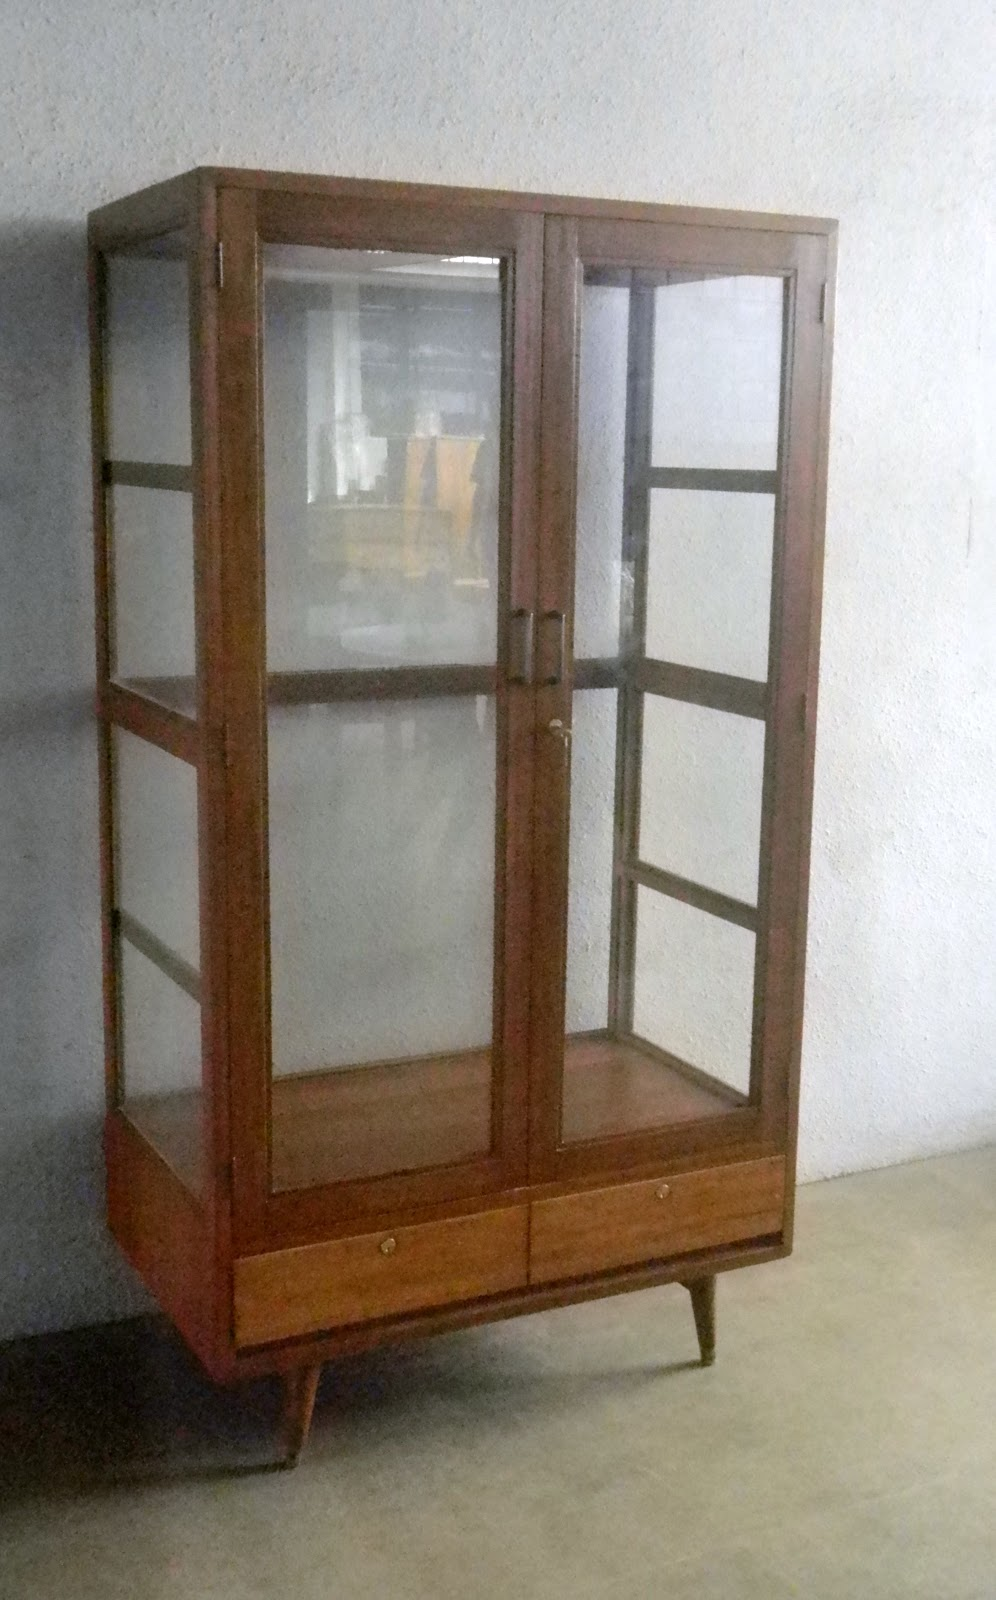 VINTAGE SHOWCASES AND DISPLAY CABINETS - VINTAGE SHOWCASES AND DISPLAY CABINETS Bobs Furniture